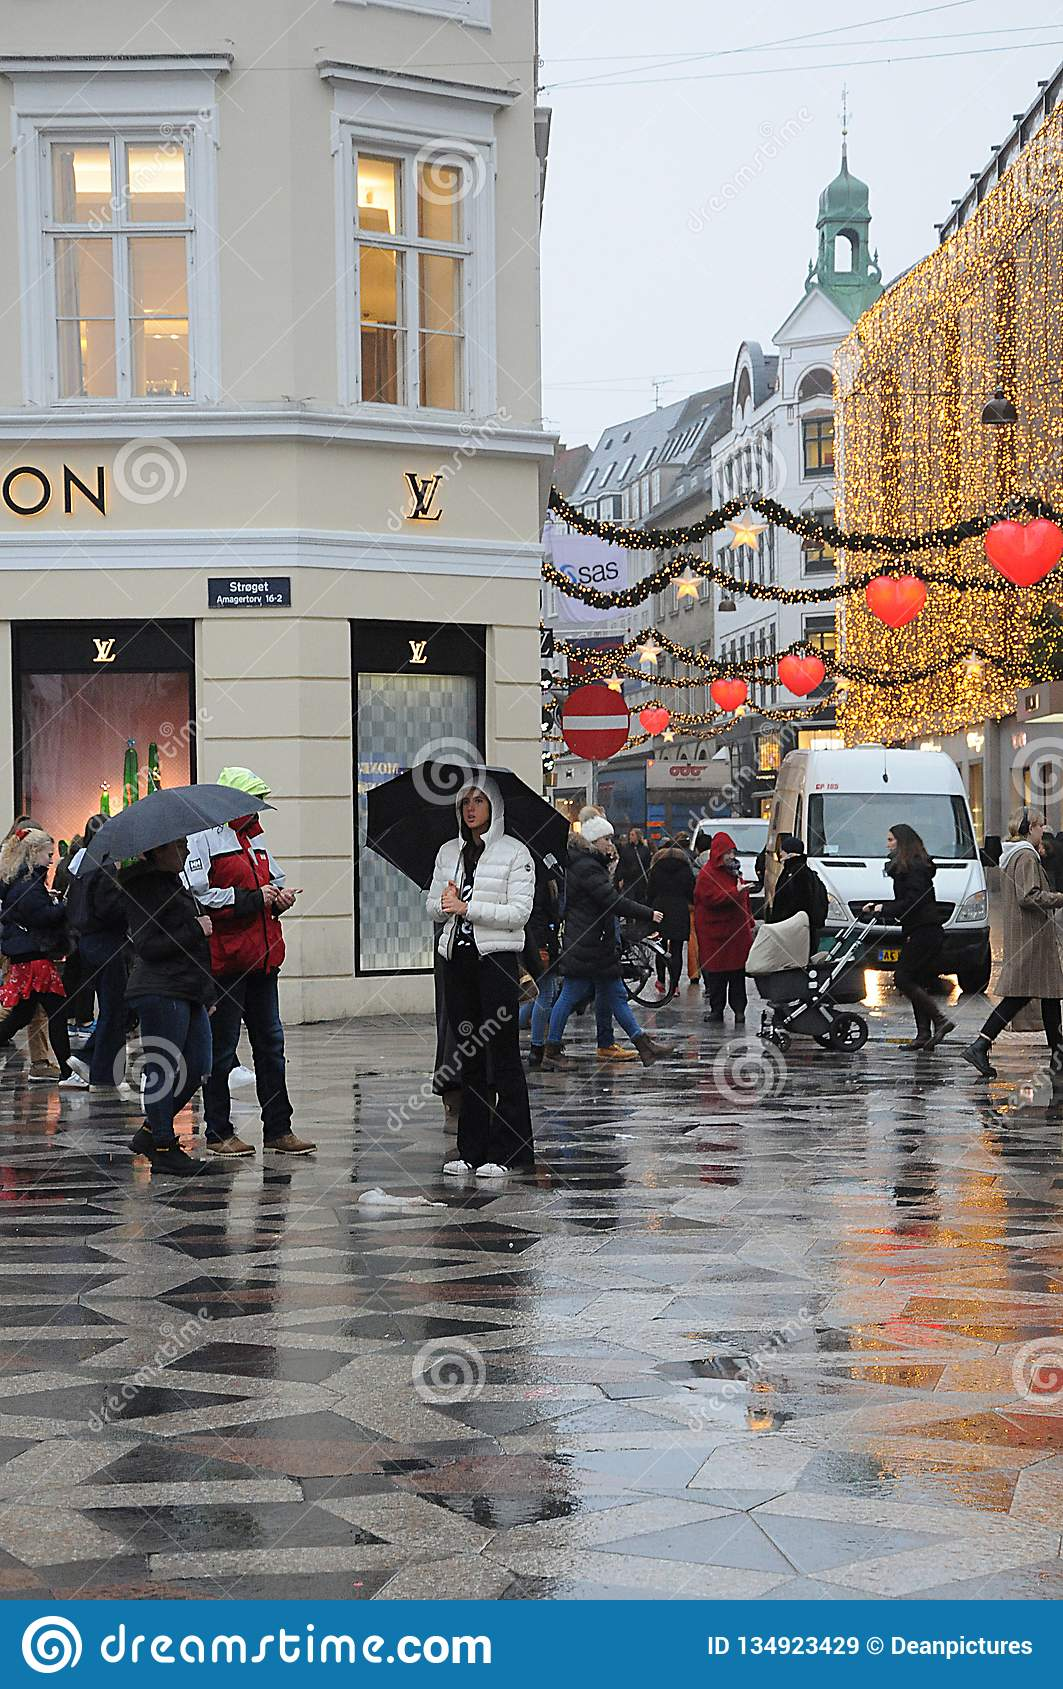 Christms Shoppers Under Embrelass On Rainy Day Editorial Stock Image